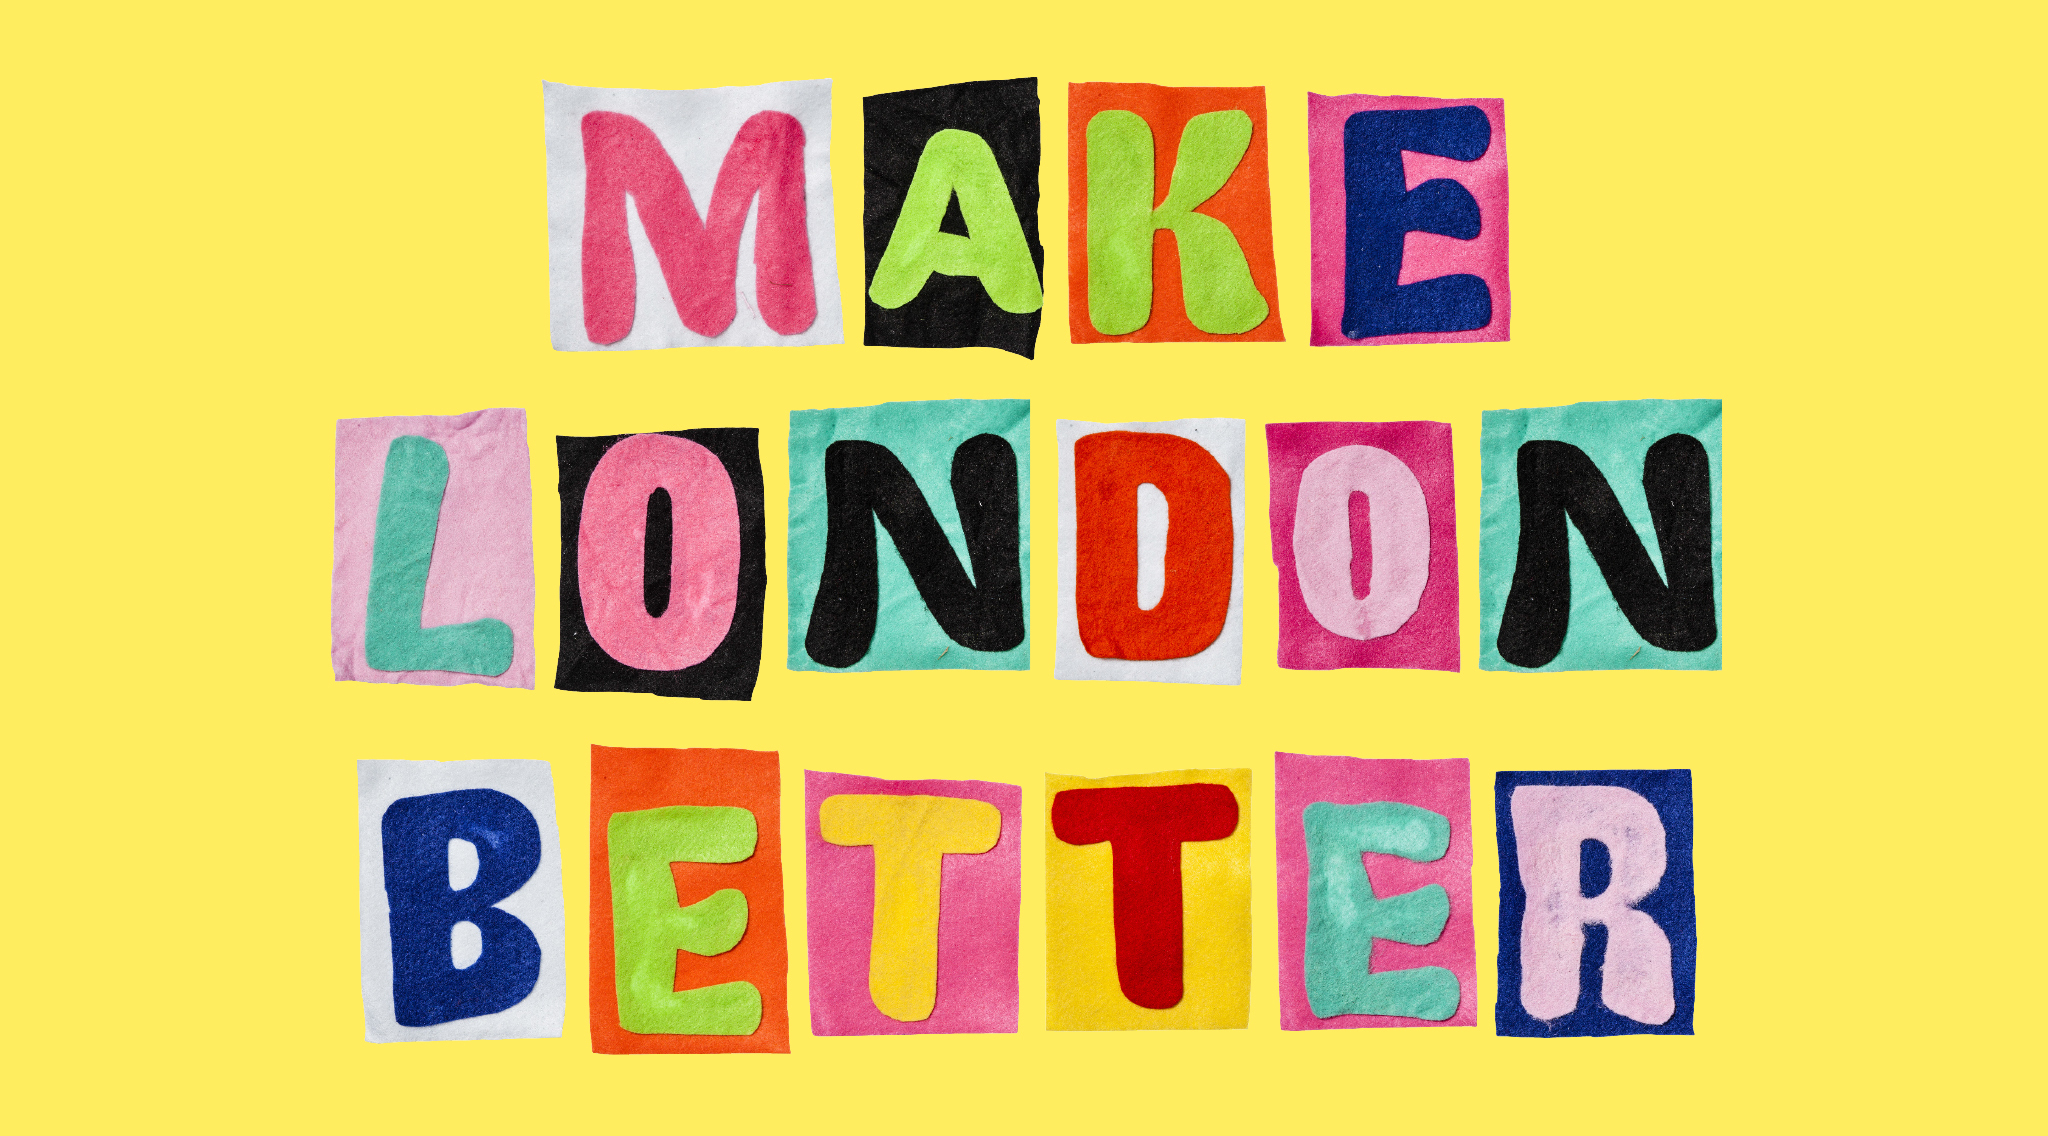 Make London better: share your idea for a way to improve the city